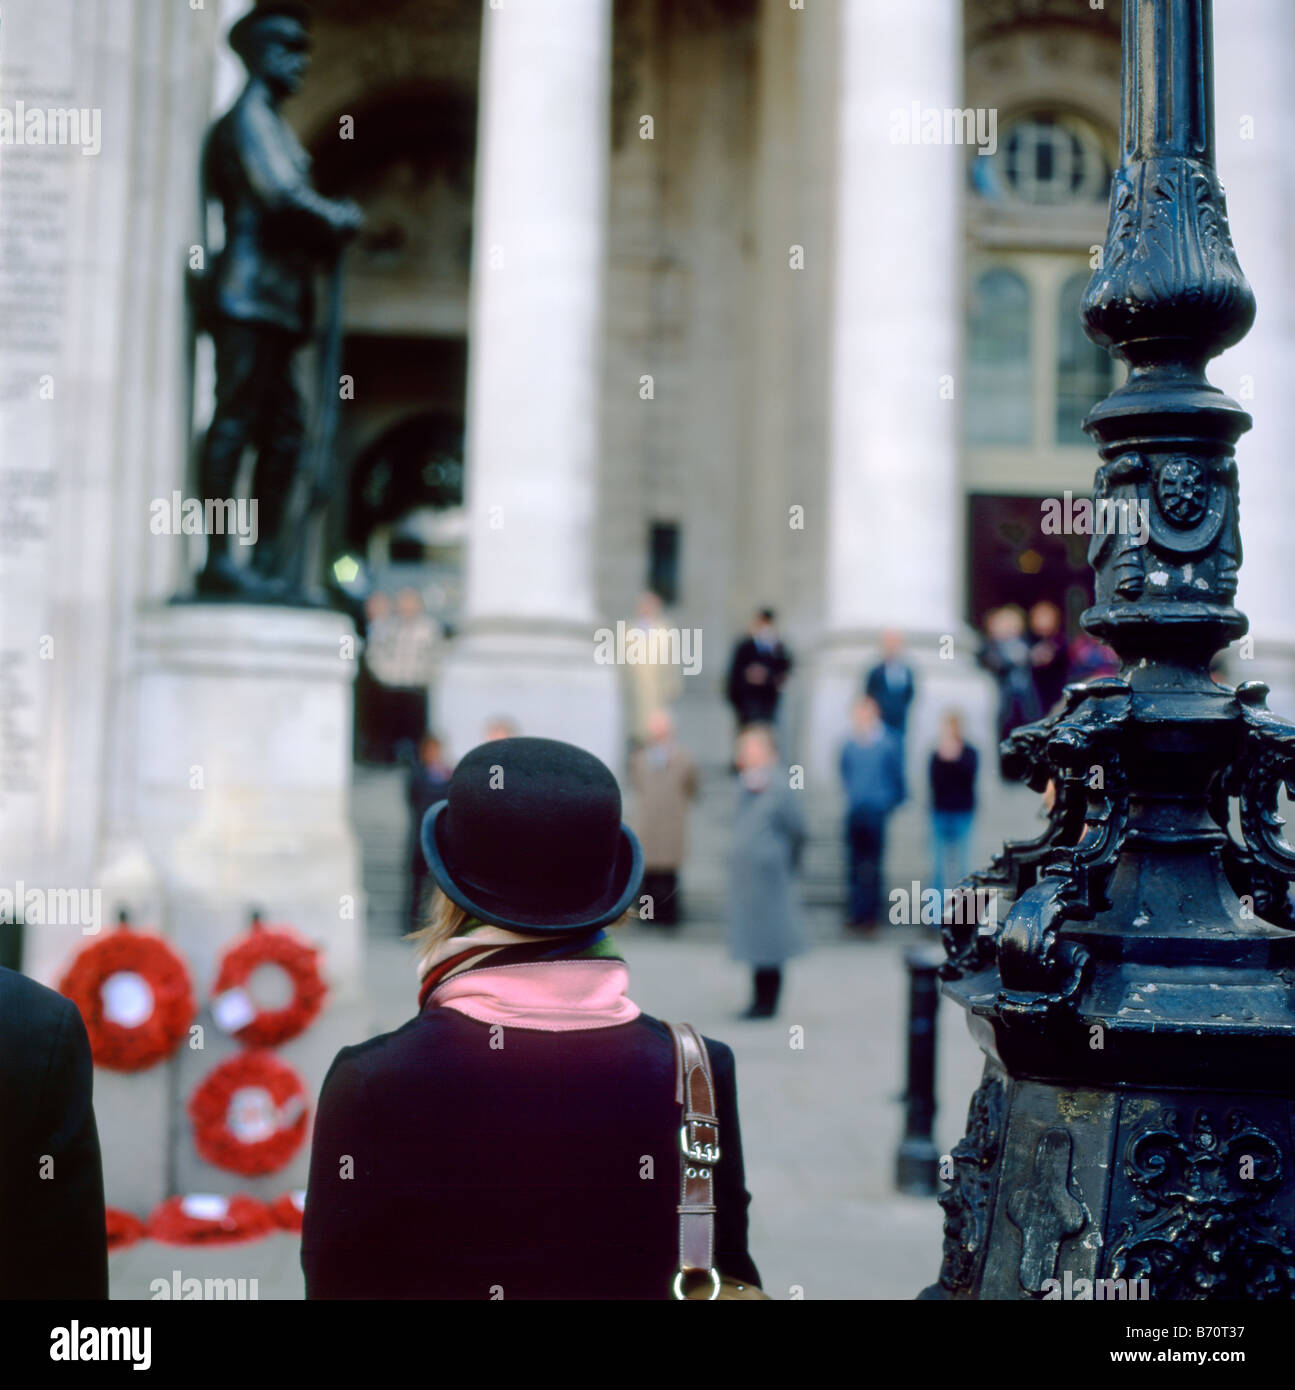 A woman in a bowler hat at the Royal Exchange Armistice Day Remembrance Day WWI and WWII memorial celebration in - Stock Image